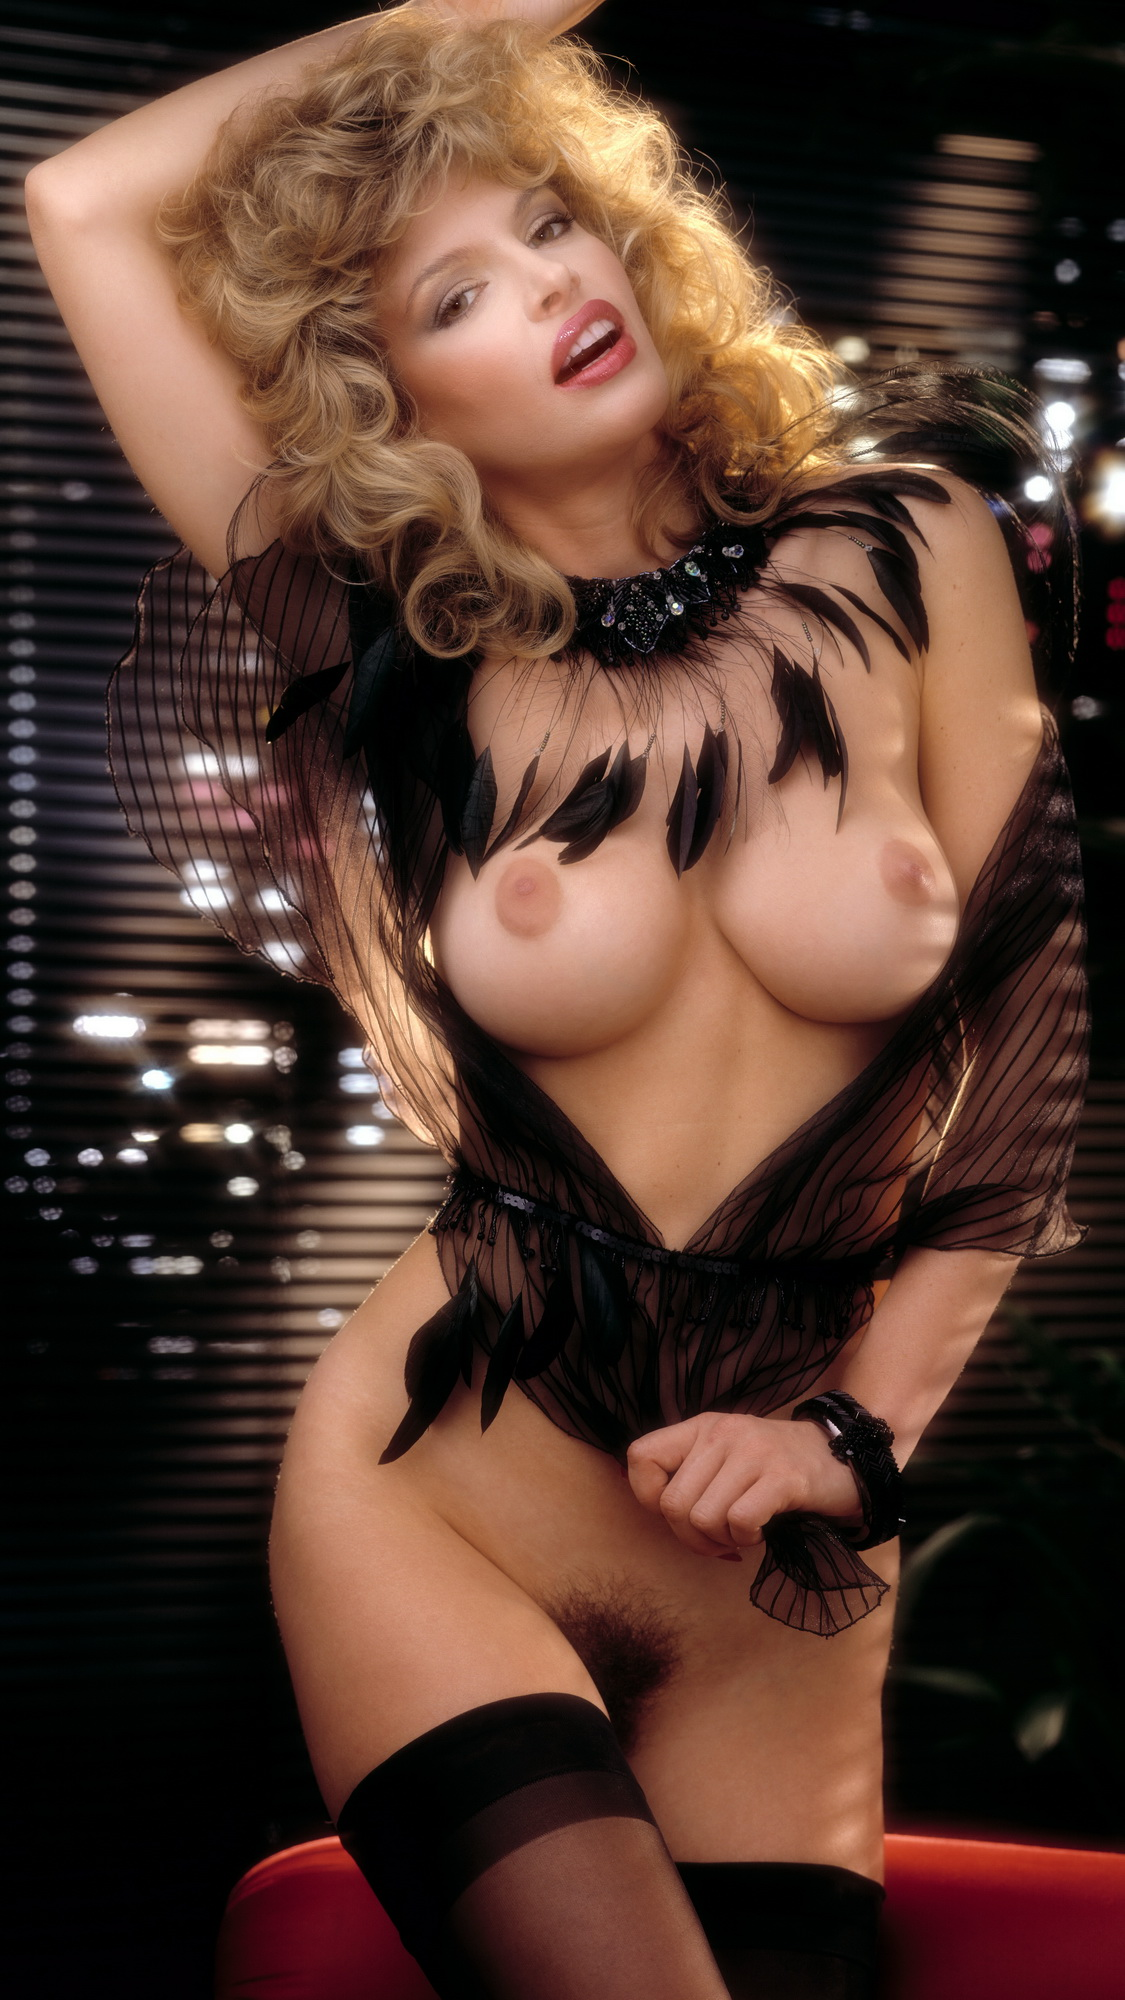 Cindy morgan playboy #4